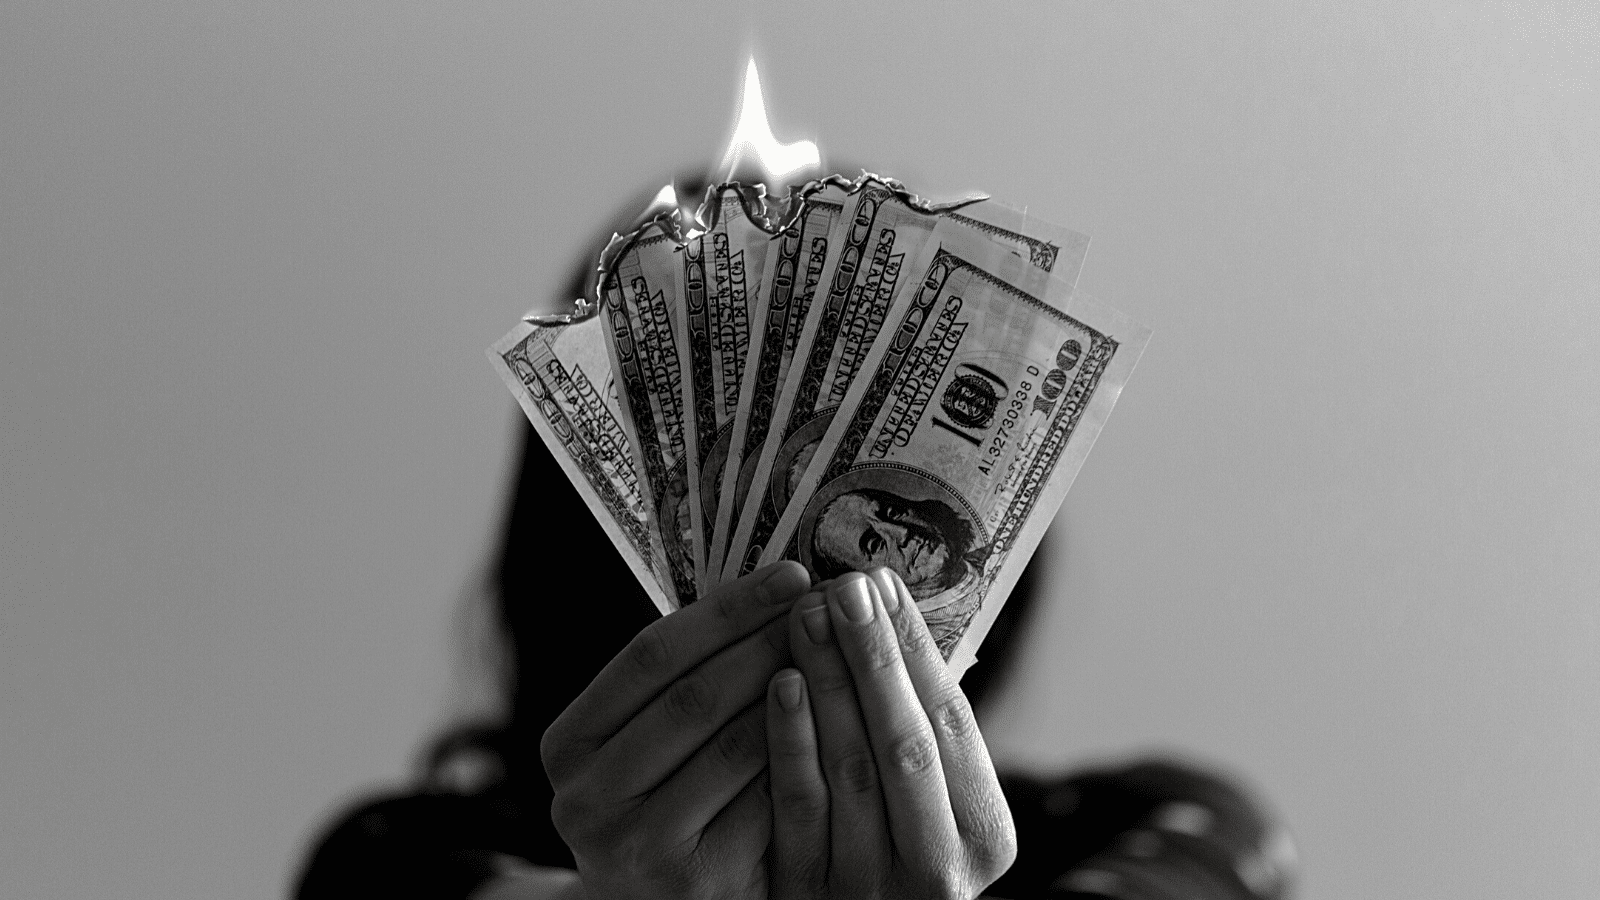 Dollar bills on fire being held by a person